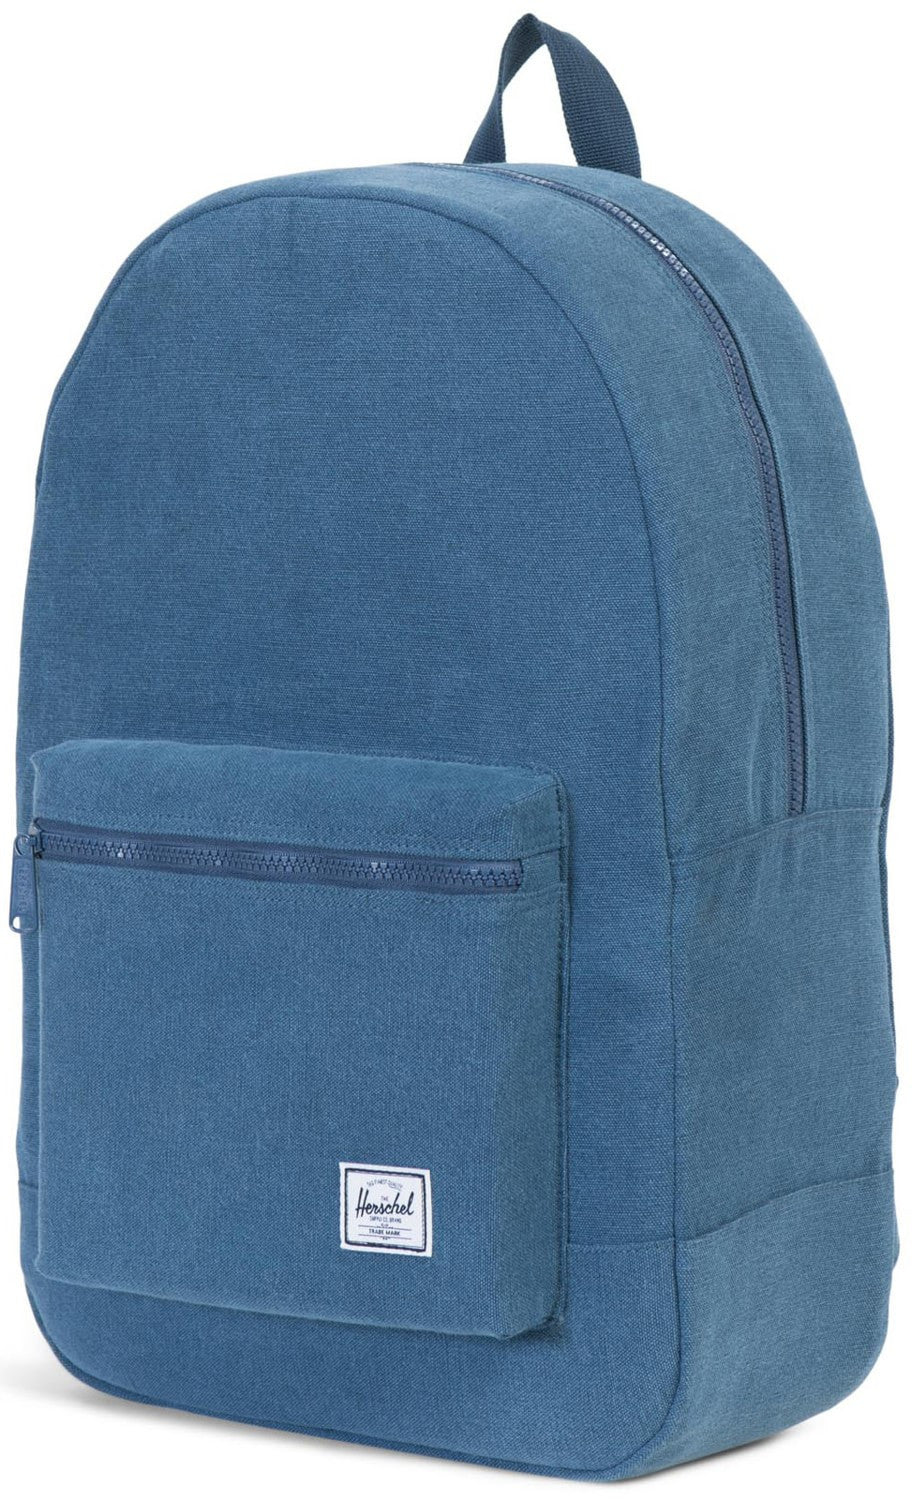 Herschel Supply Co. - Packable Daypack, Navy Canvas - The Giant Peach - 2